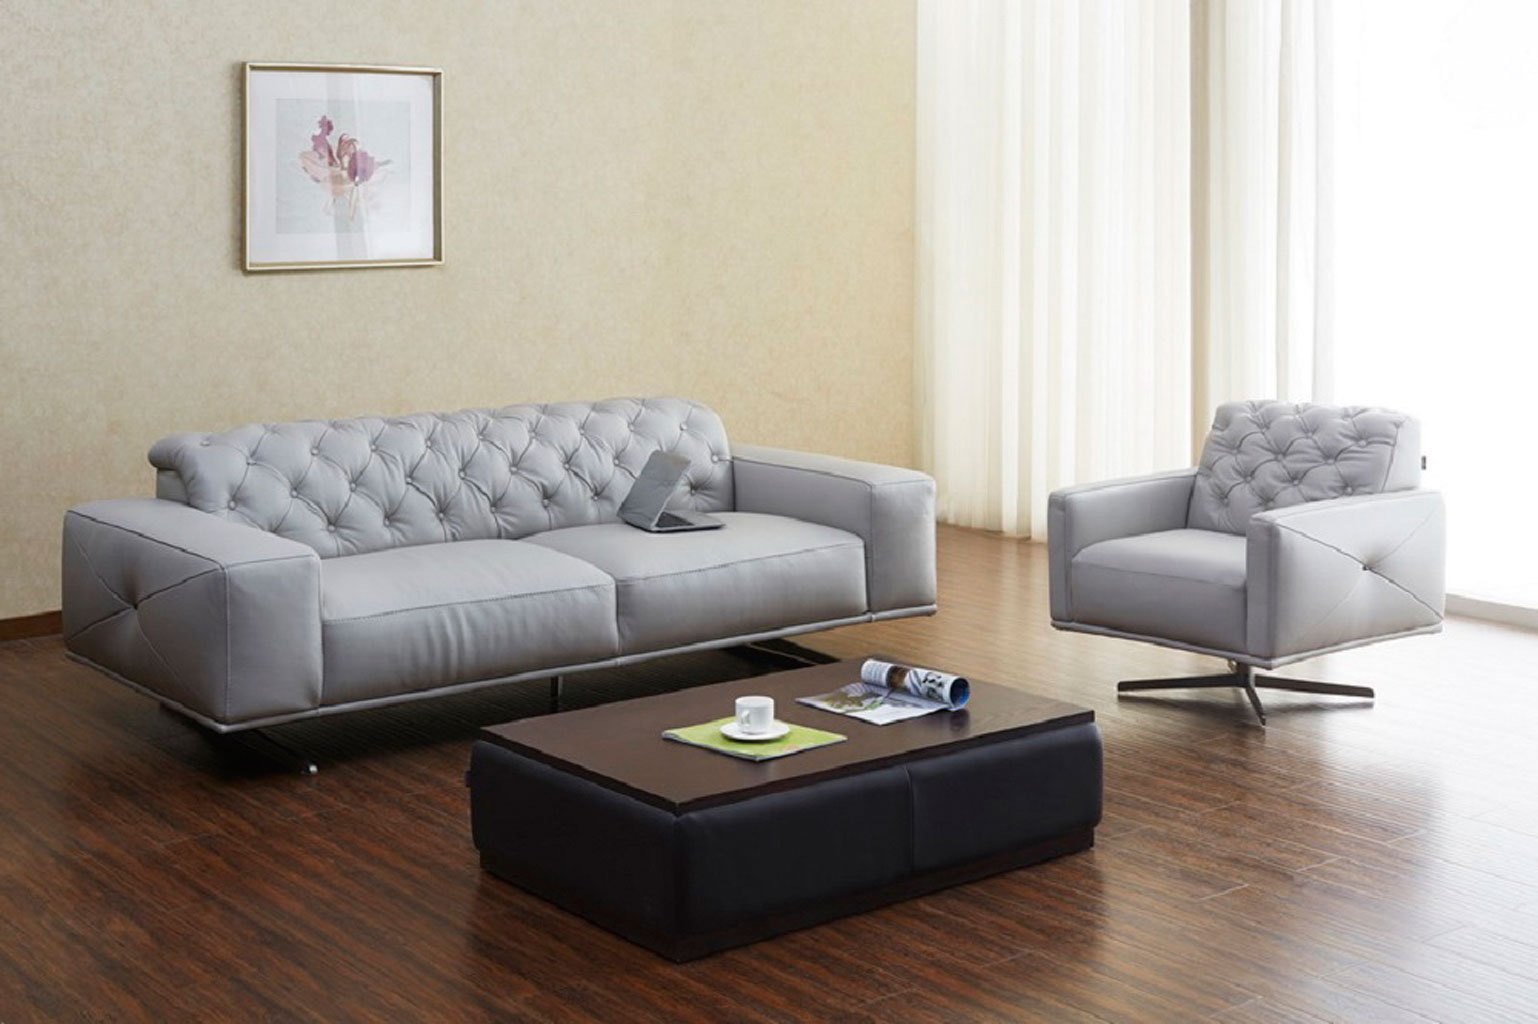 Grey Recliners In Living Room